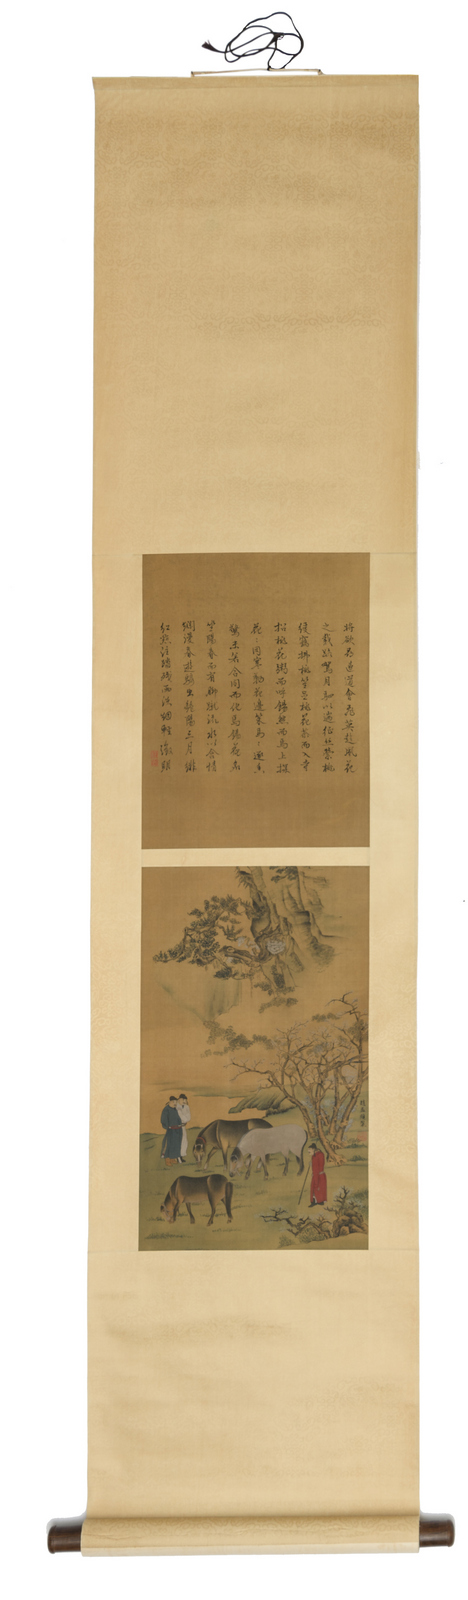 A Chinese scroll, watercolour on silk, depicting horses, figures in a landscape and calligraphic texts, with a matching box, 29,5 x 90 (without mount) - 42,5 x 177 cm (with mount)